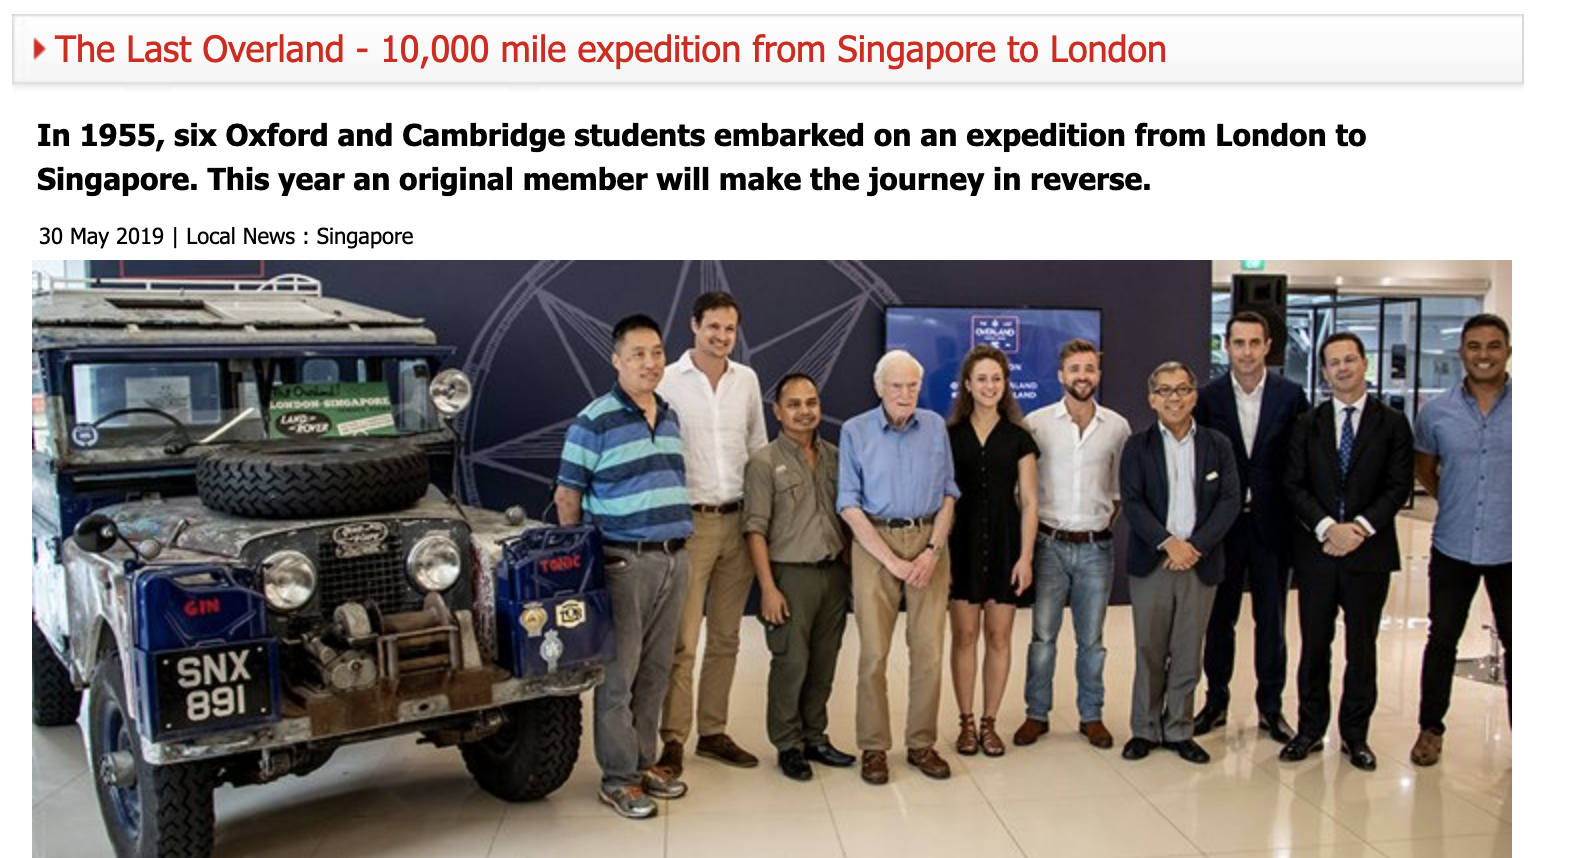 The Last Overland - 10,000 mile expedition from Singapore to London